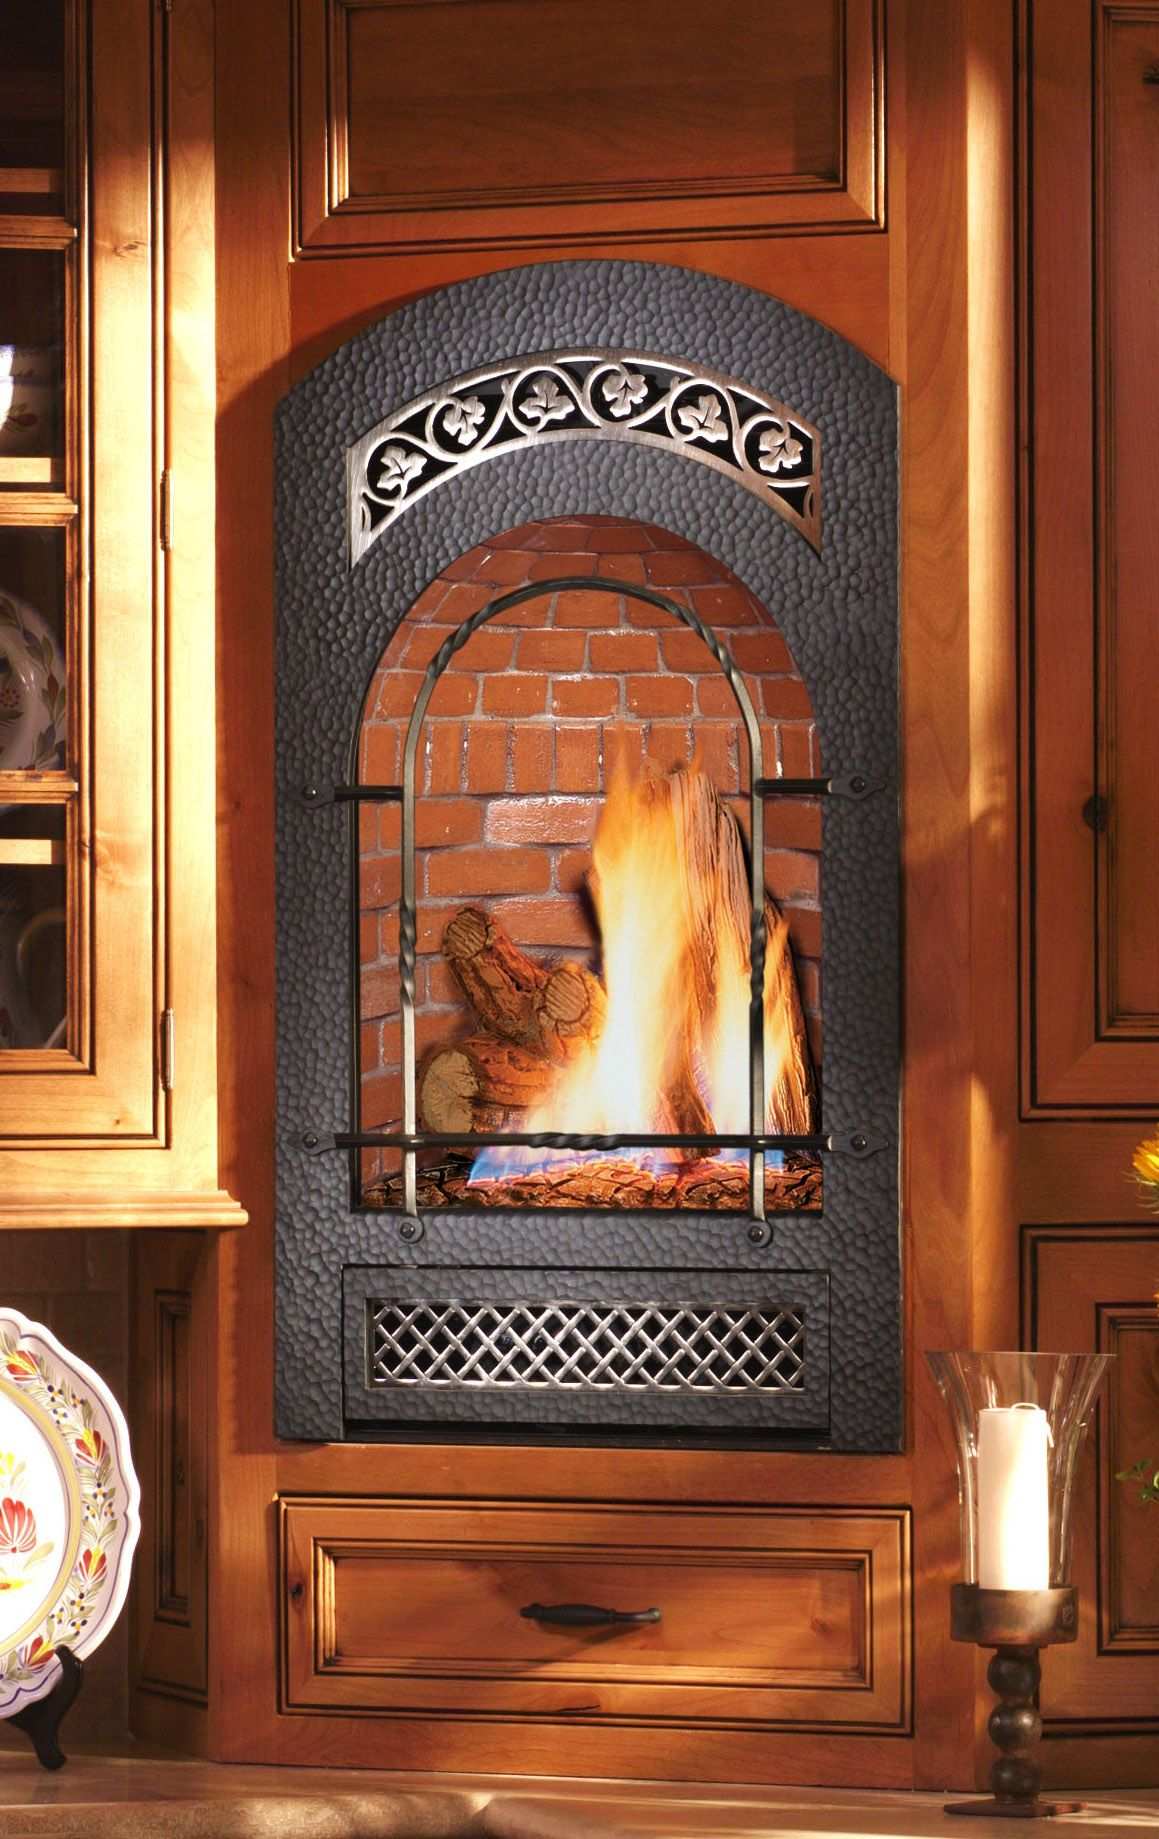 Wall Fireplace Gas Small Wall Mounted Gas Fireplace Great For Bedrooms Baths B B